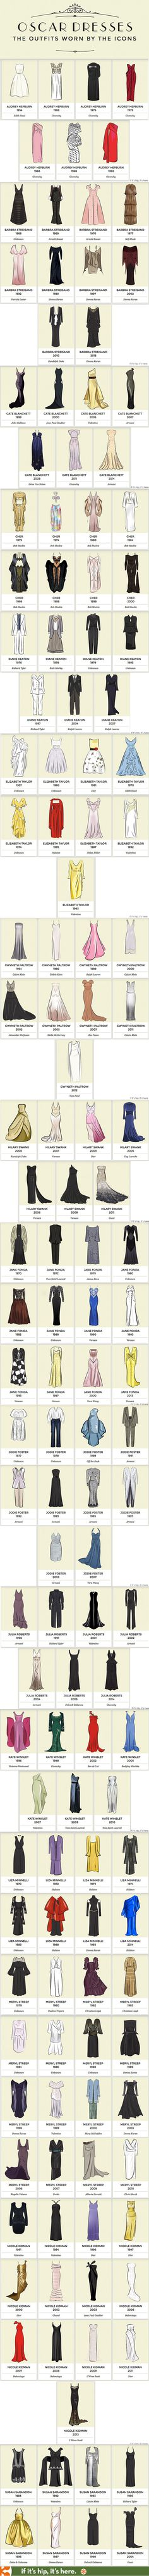 Iconic Oscar Dresses, grouped by Actress. | http://www.ifitshipitshere.com/iconic-oscar-dresses/